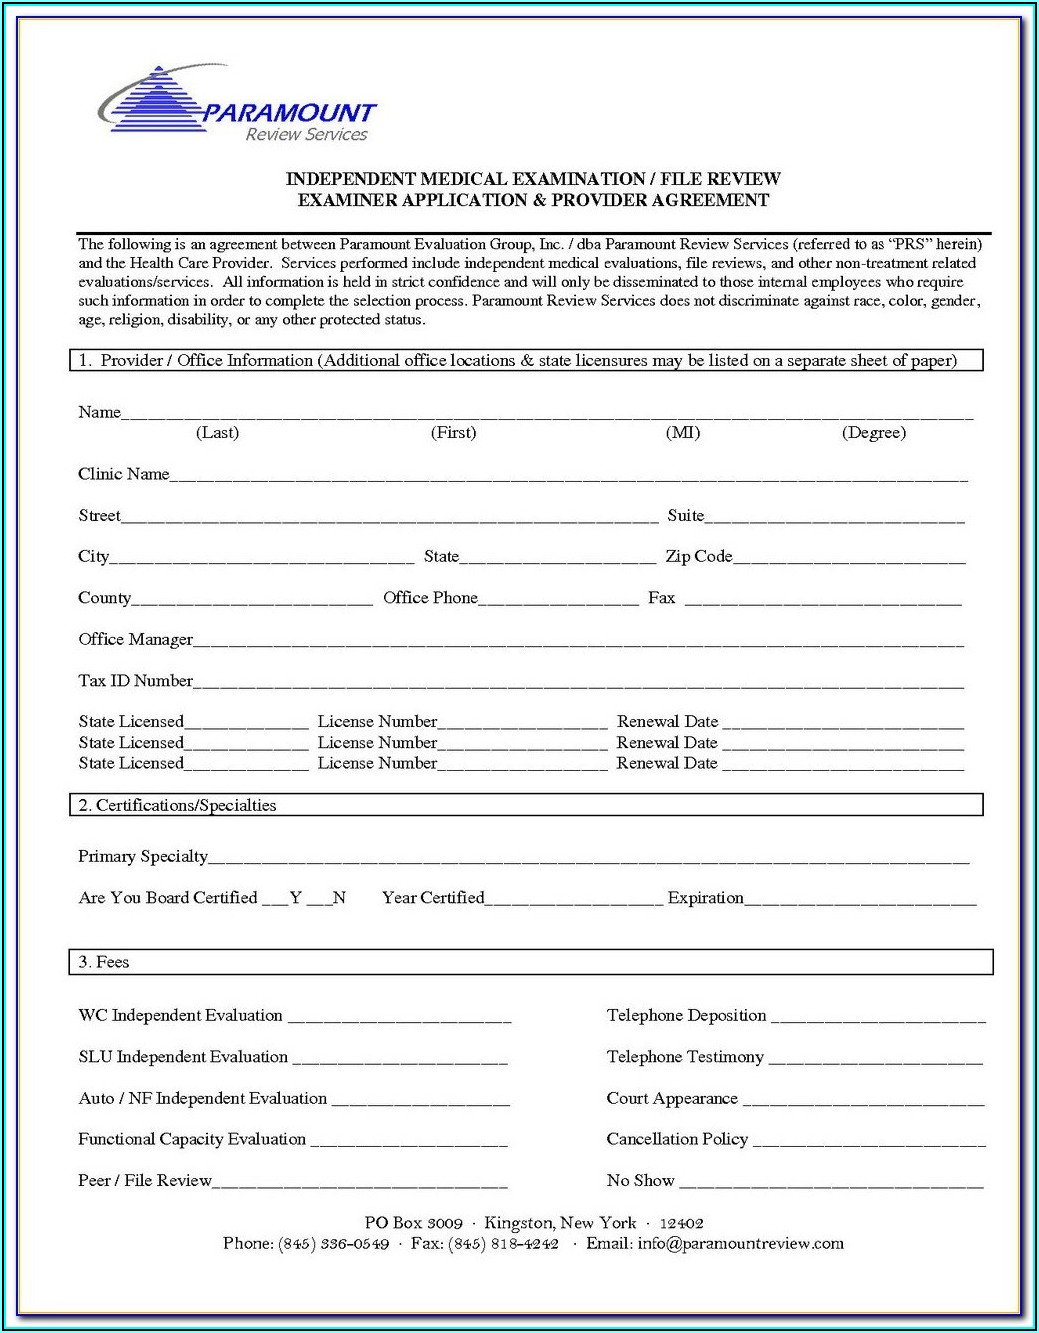 Unitedhealthcare Medicare Part D Prior Auth Form